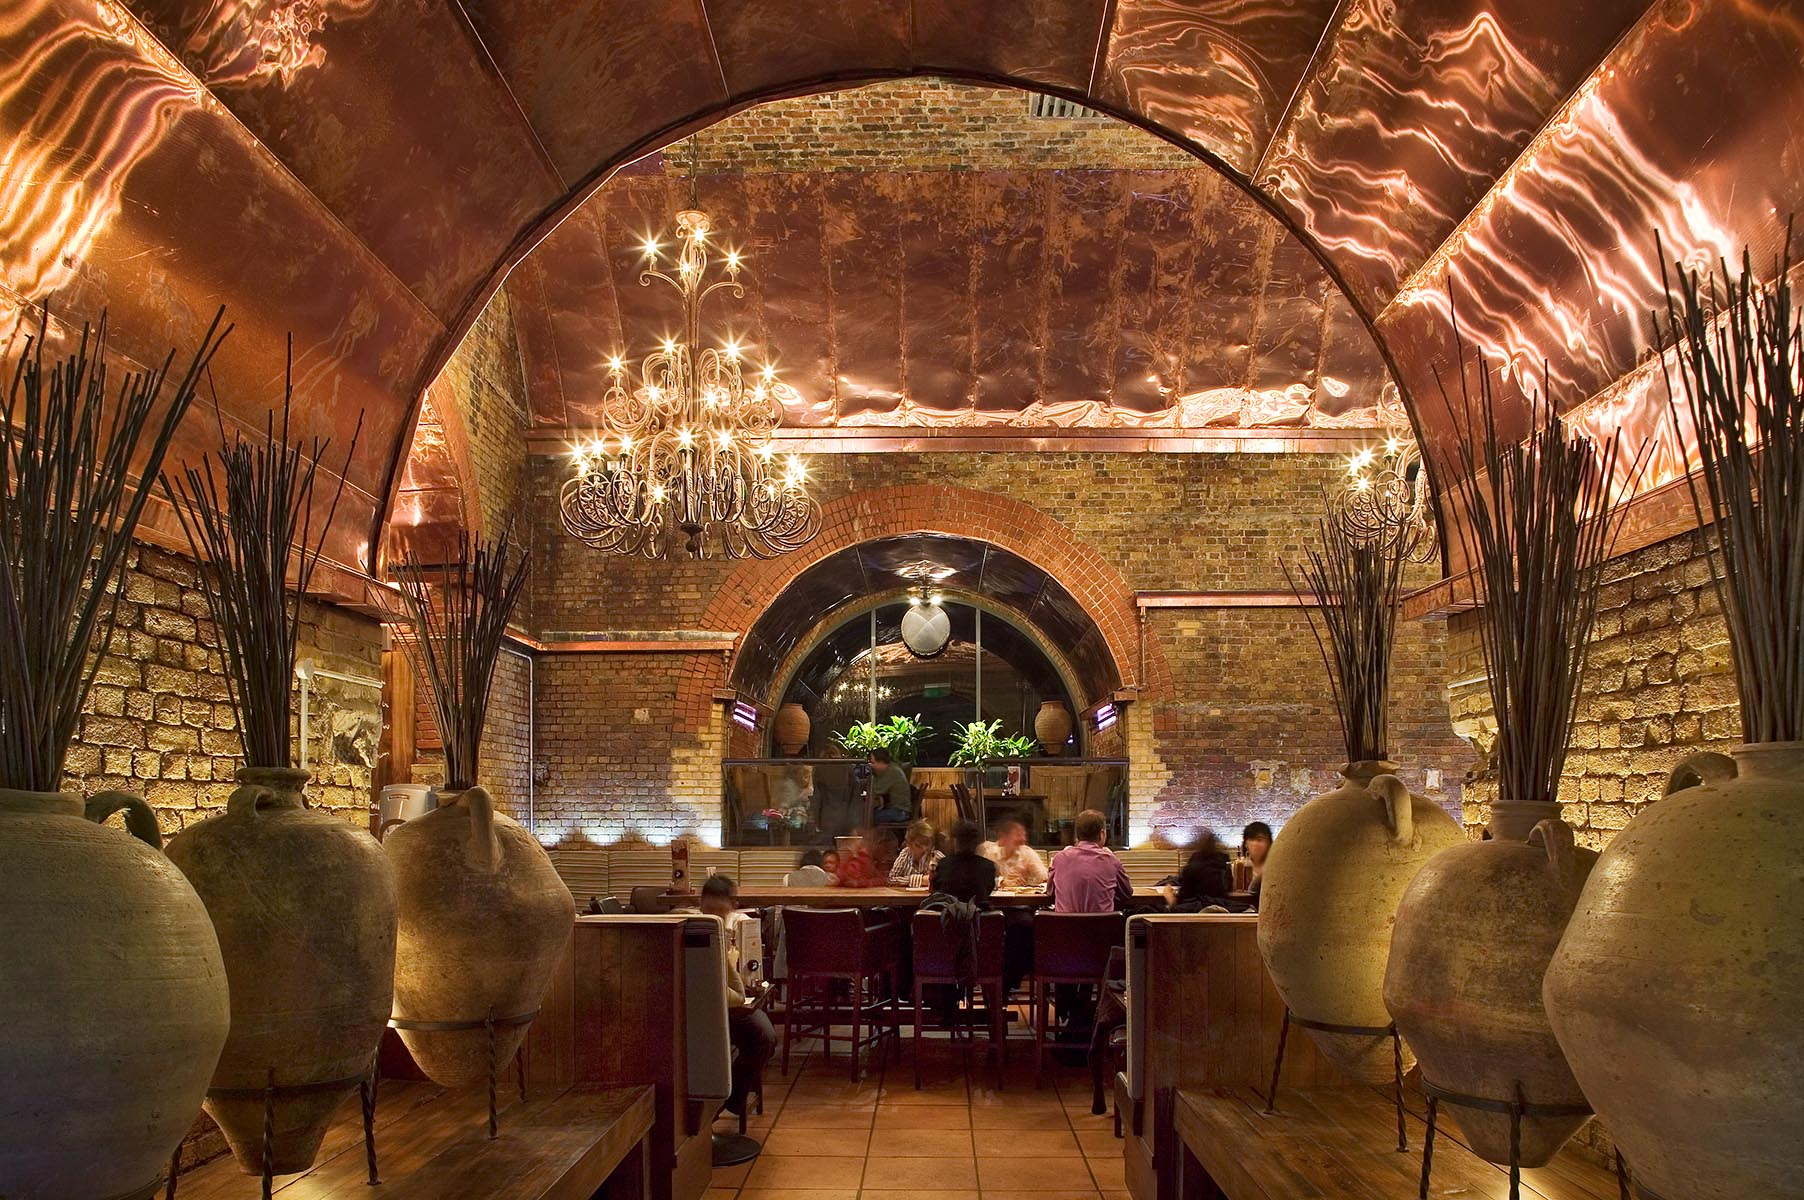 Mid-range restaurant set in transformed railway arch with copper vaulted ceilings.Client: Network Rail